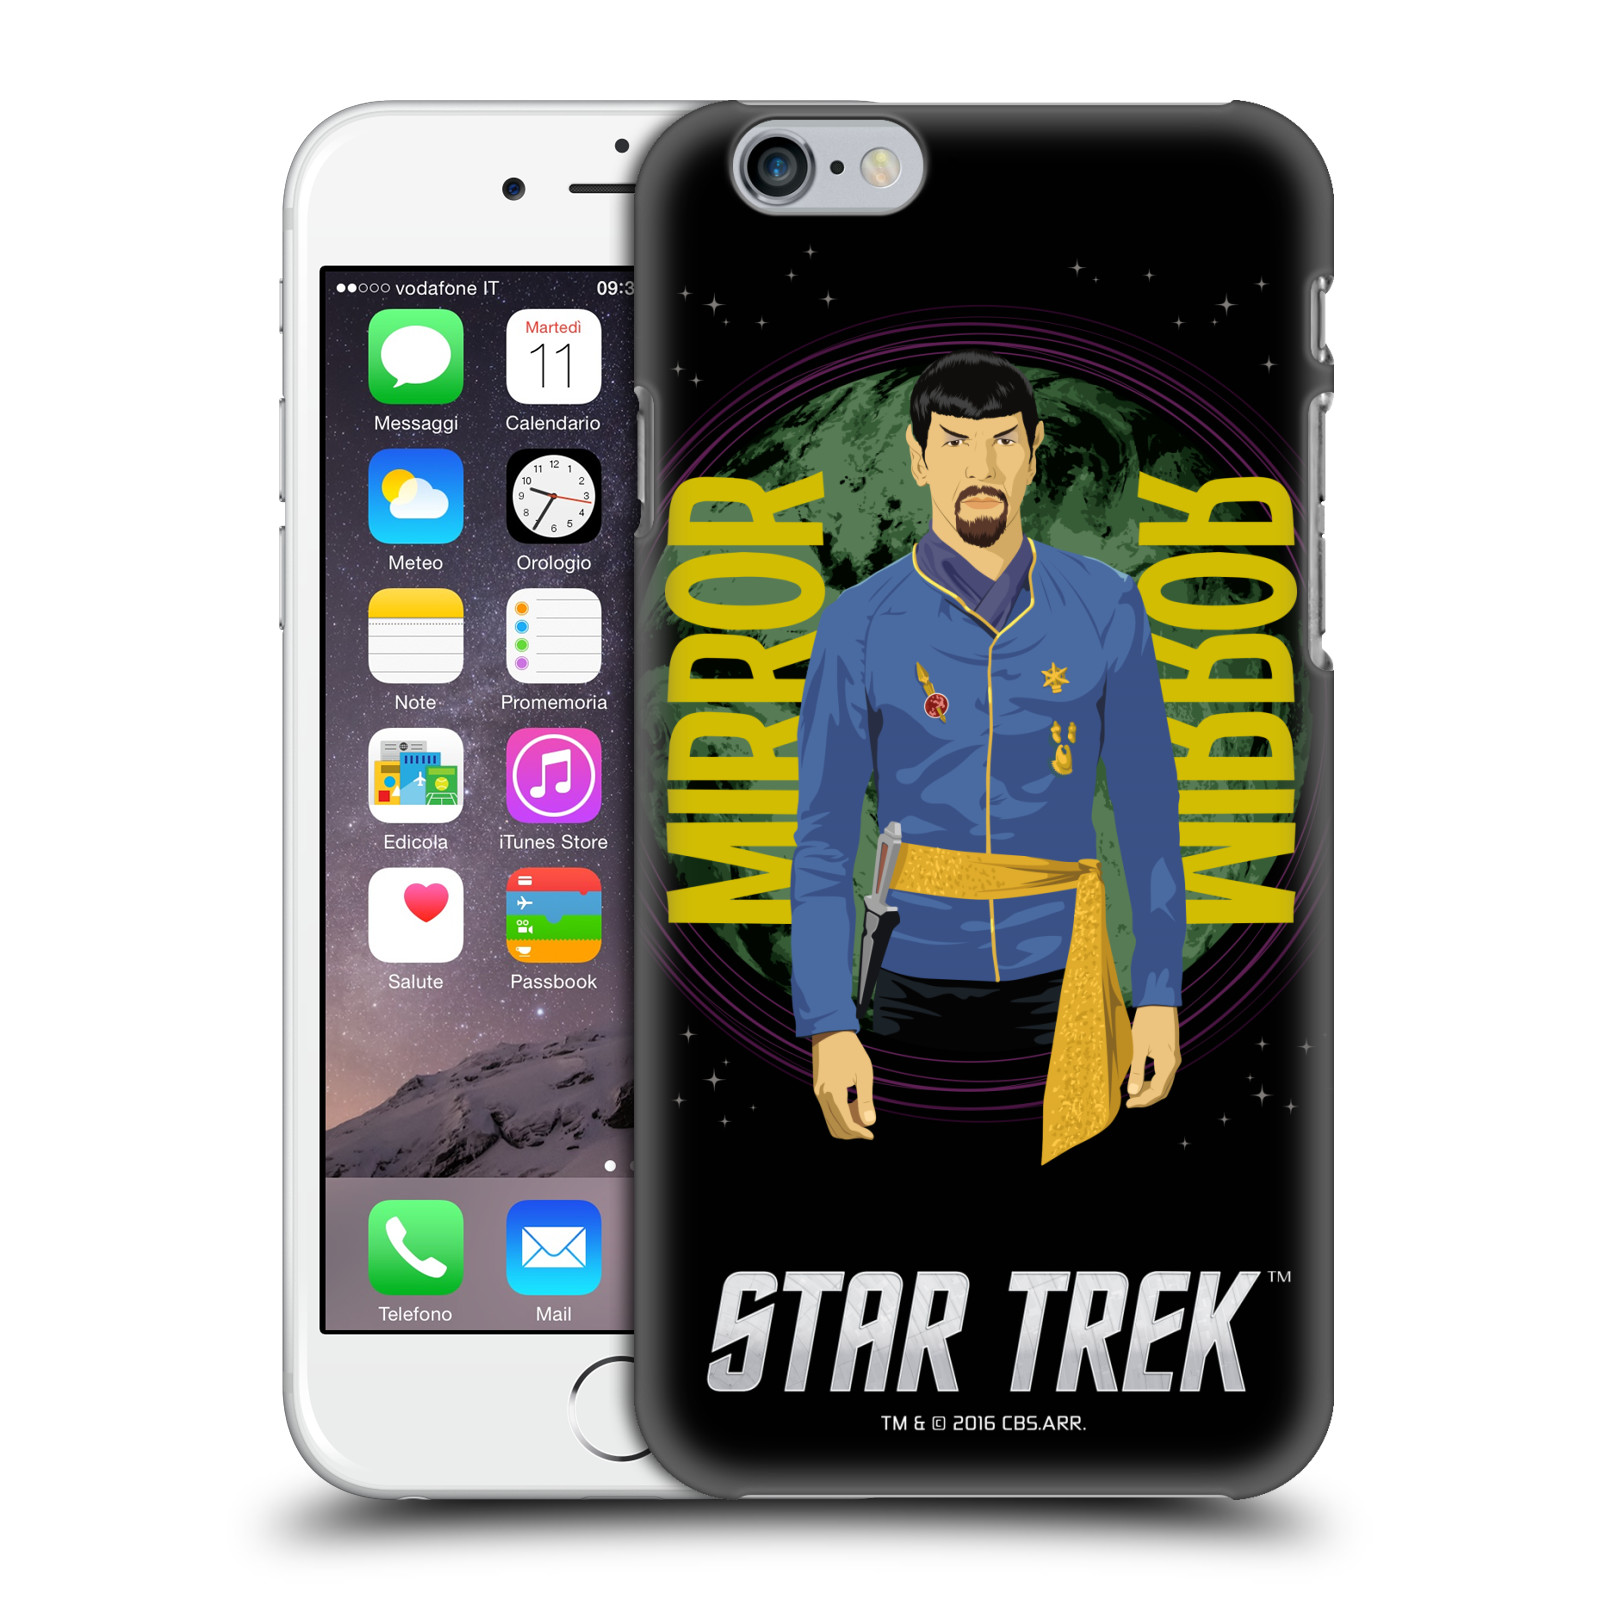 Star Trek Iconic Characters TOS-Mirror Spock